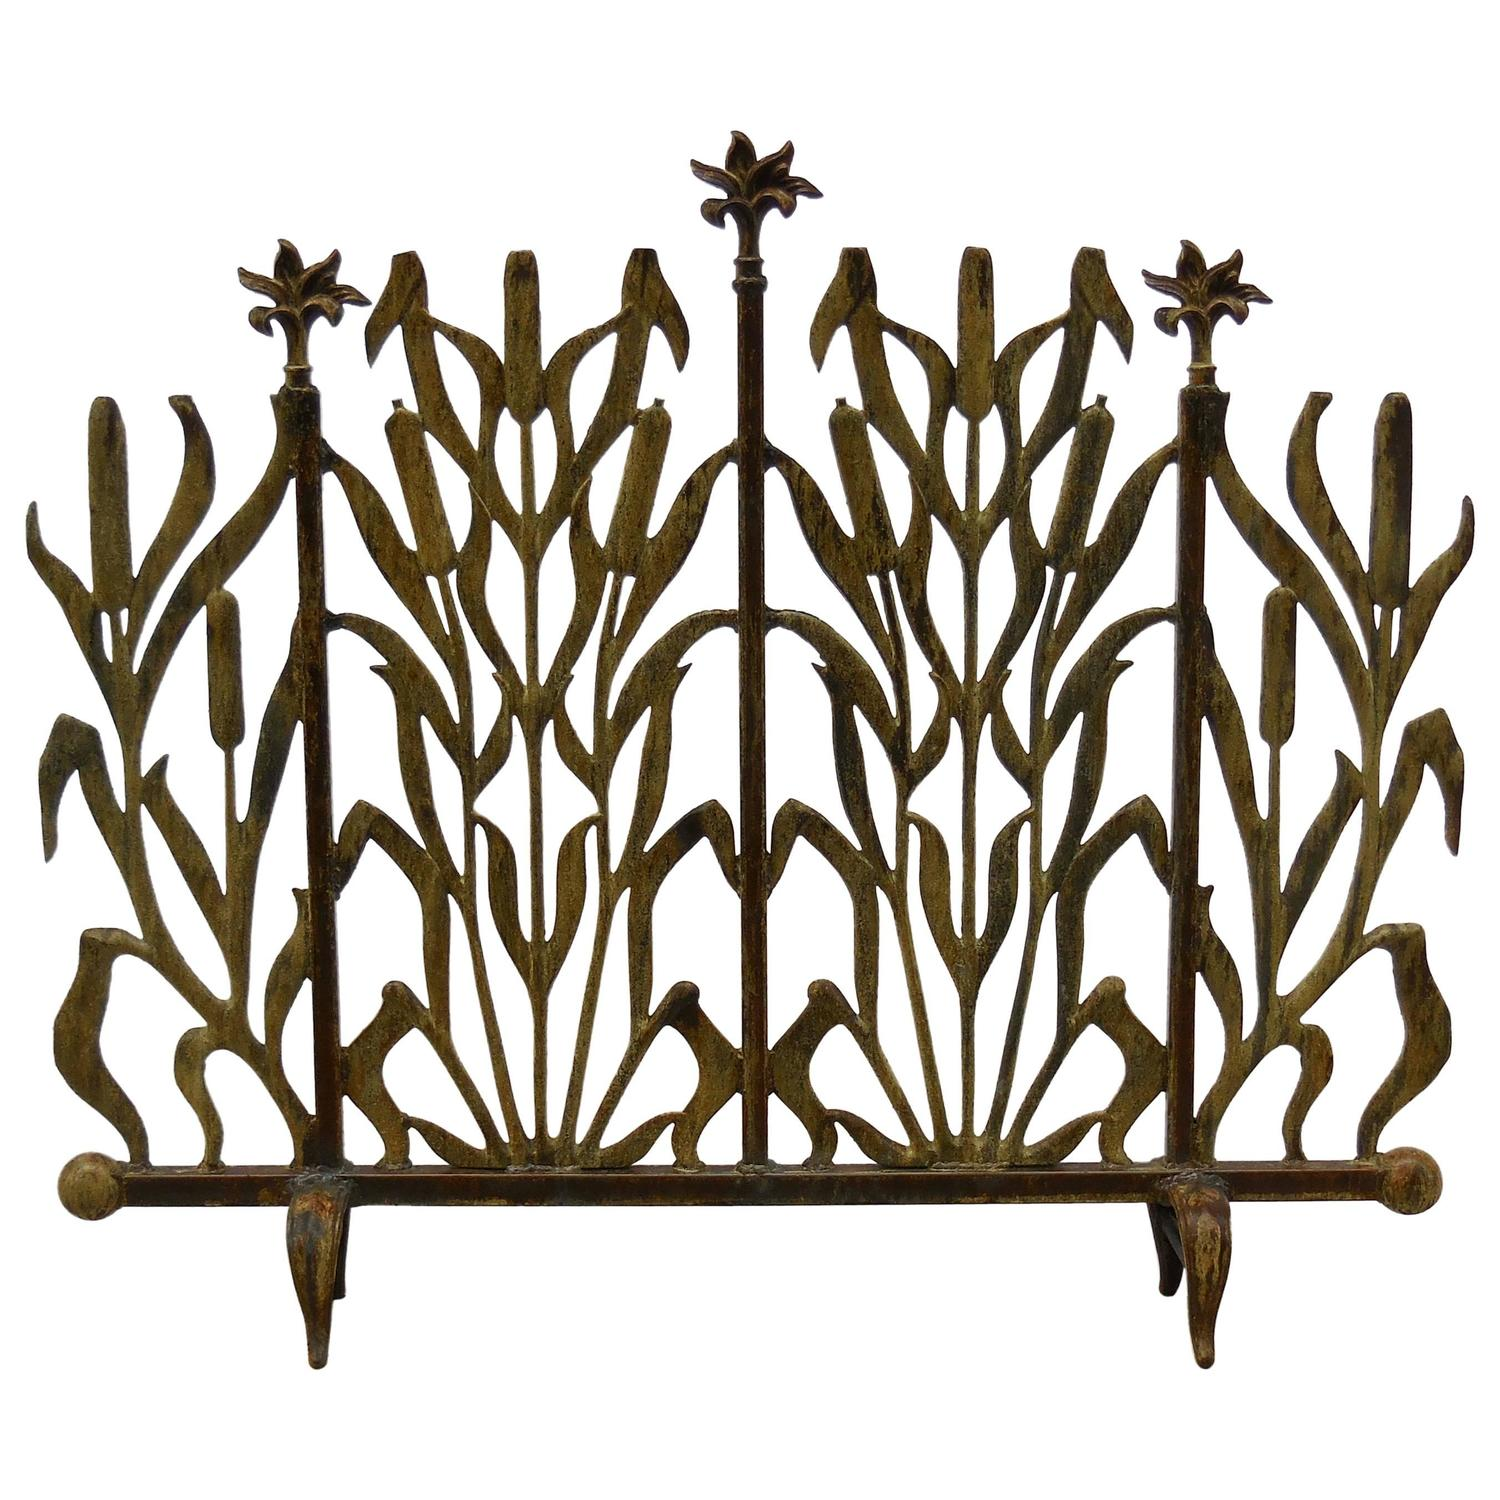 Cat Tail Iron Fireplace Screen For Sale At 1stdibs